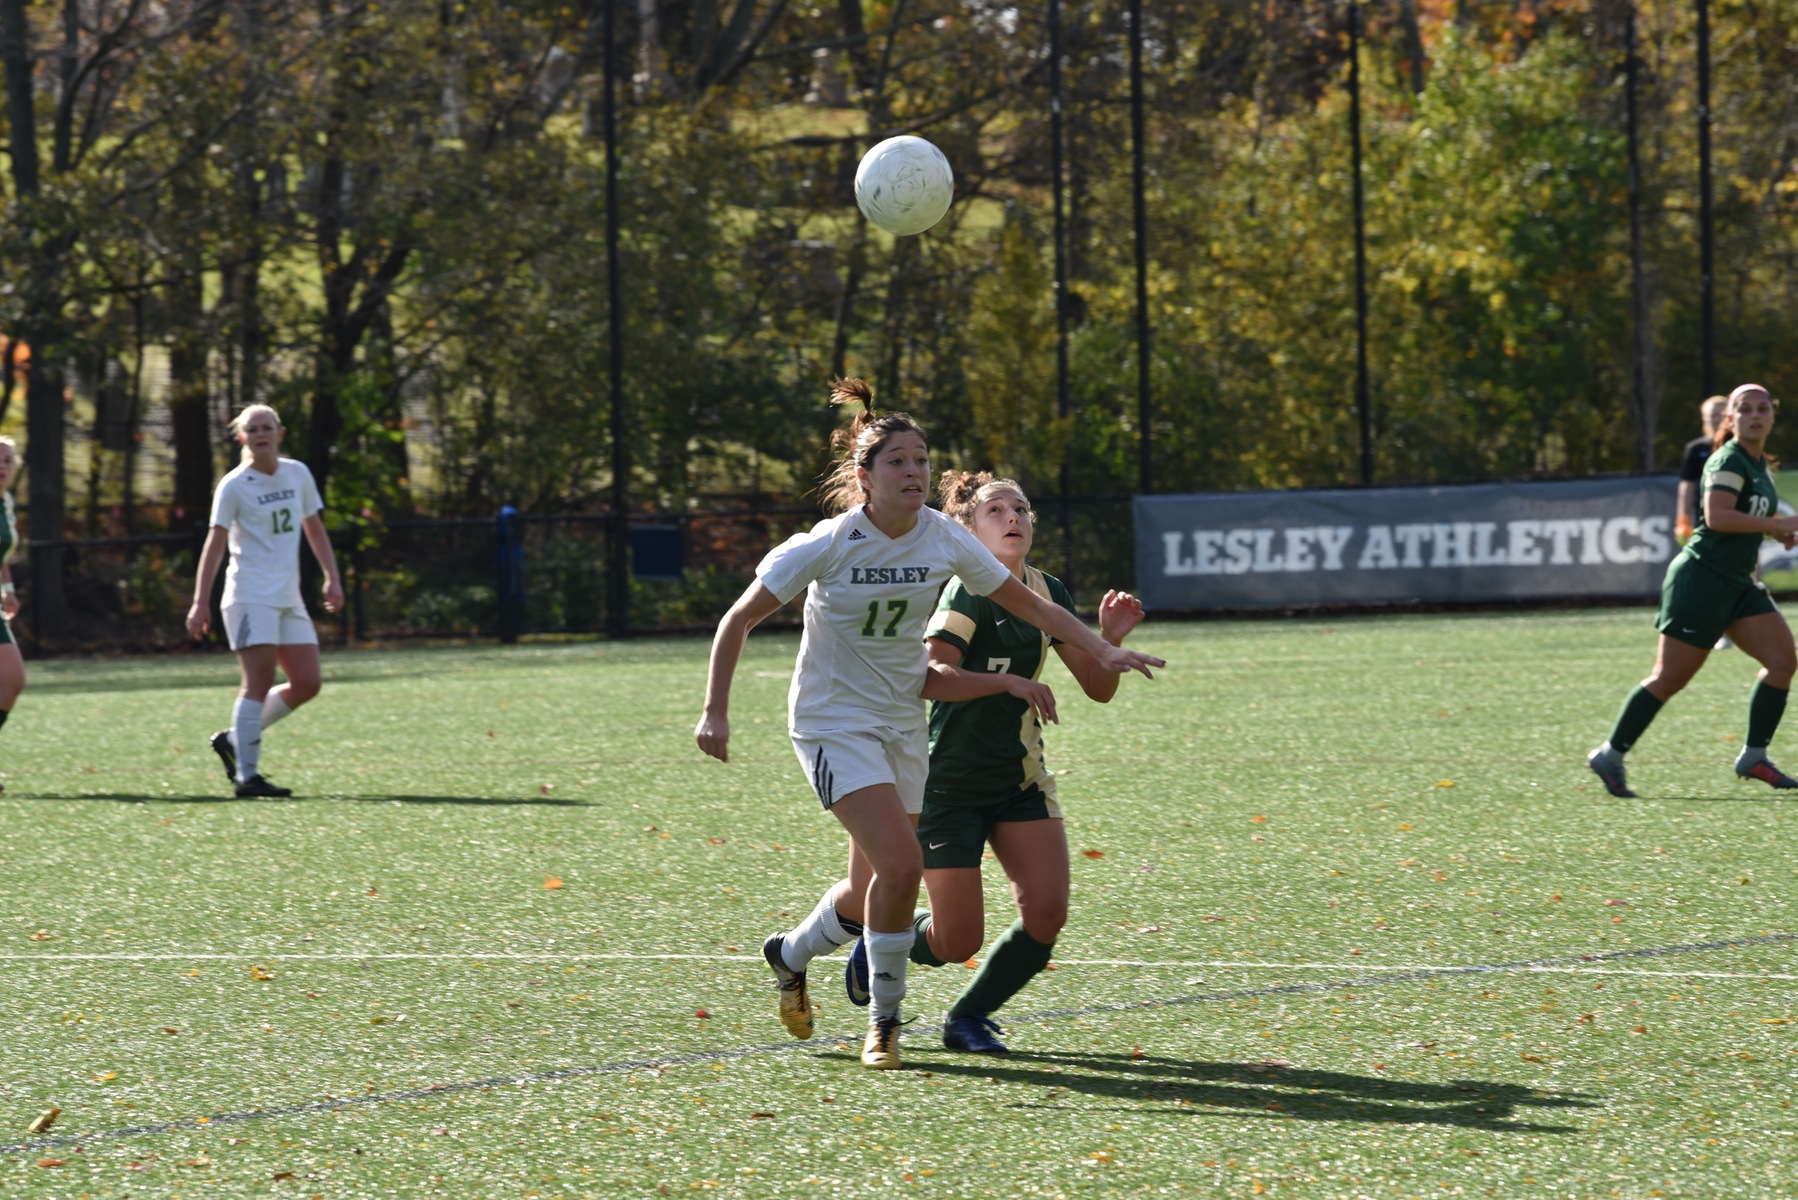 Lynx Open NECC Play with 3-0 Win